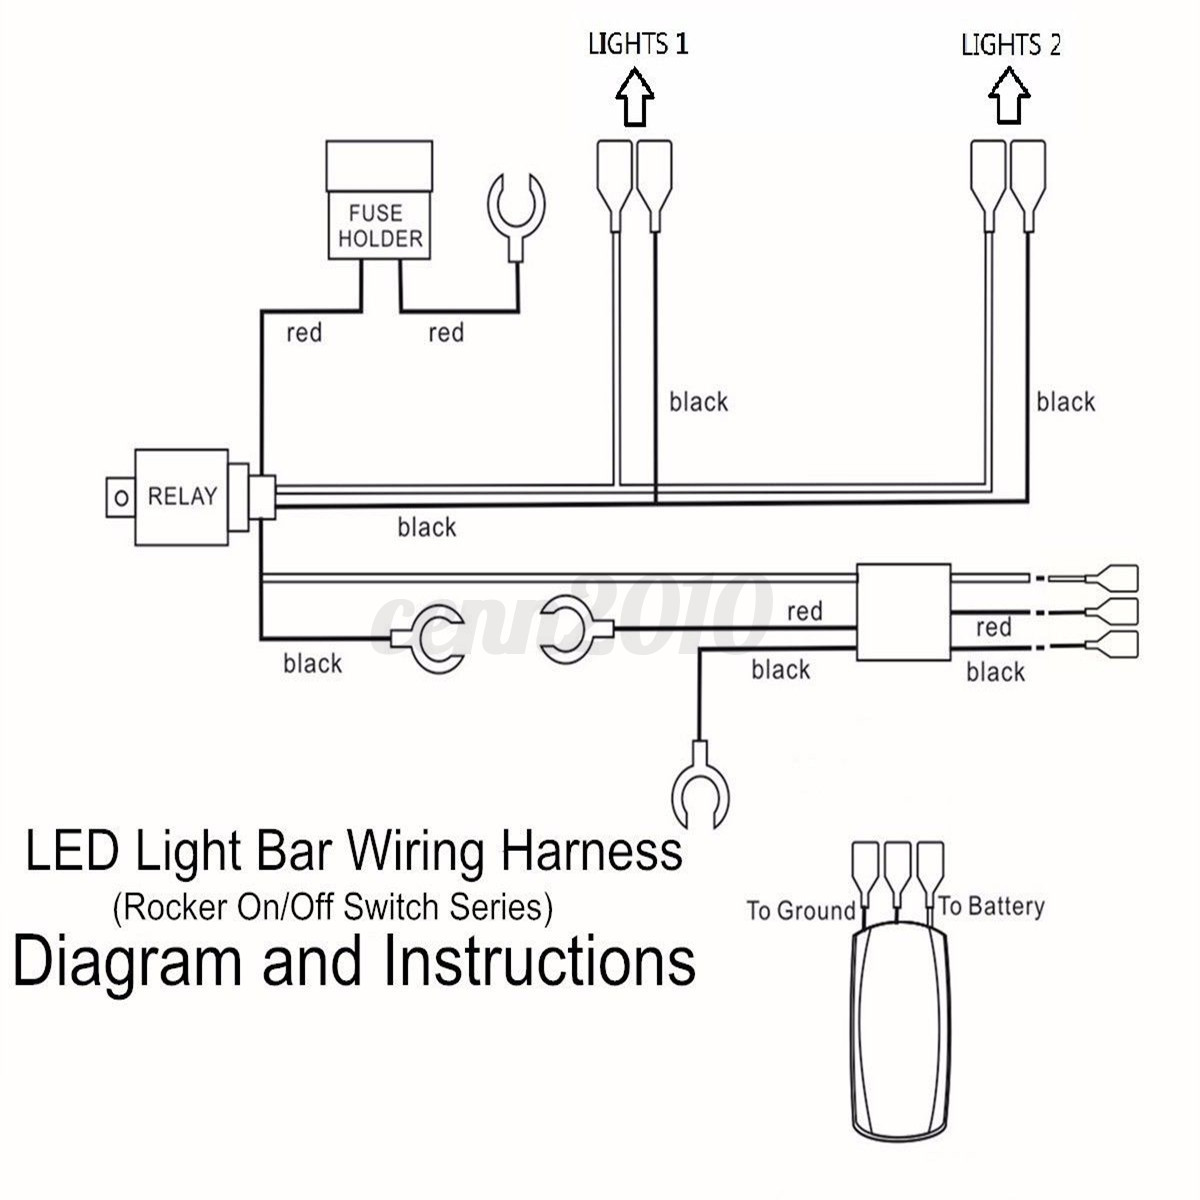 led light bar wiring harness diagram ewiring on off switch led rocker wiring diagrams off road light bar